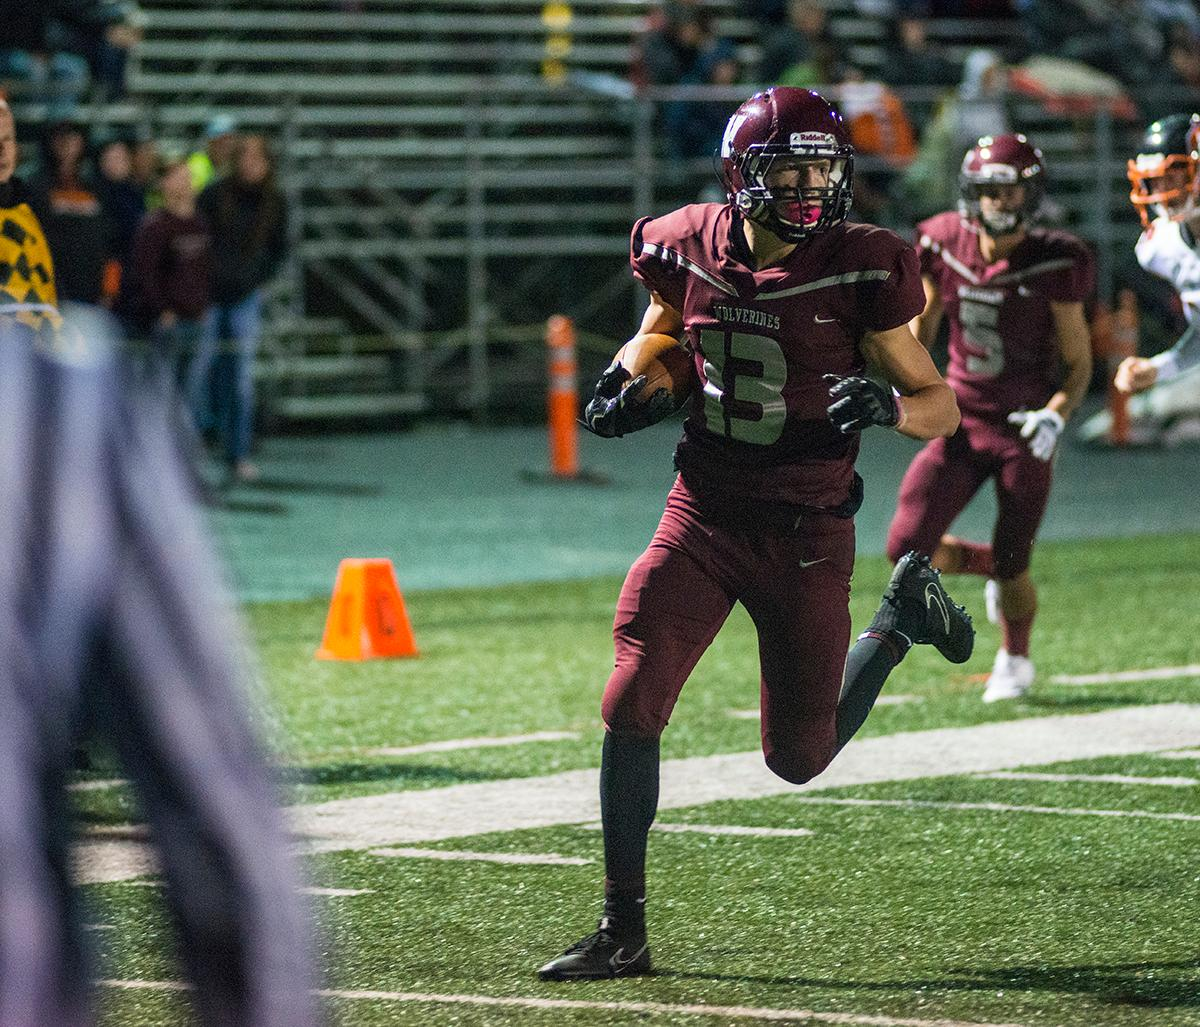 Willamette Wolverines Bryce Goggin (#13) makes it to the end zone for a touchdown. Roseburg Indians defeated Willamette Wolverines 21-20 at Wolverine Stadium on Friday night in Eugene. Photo by Rhianna Gelhart, Oregon News Lab